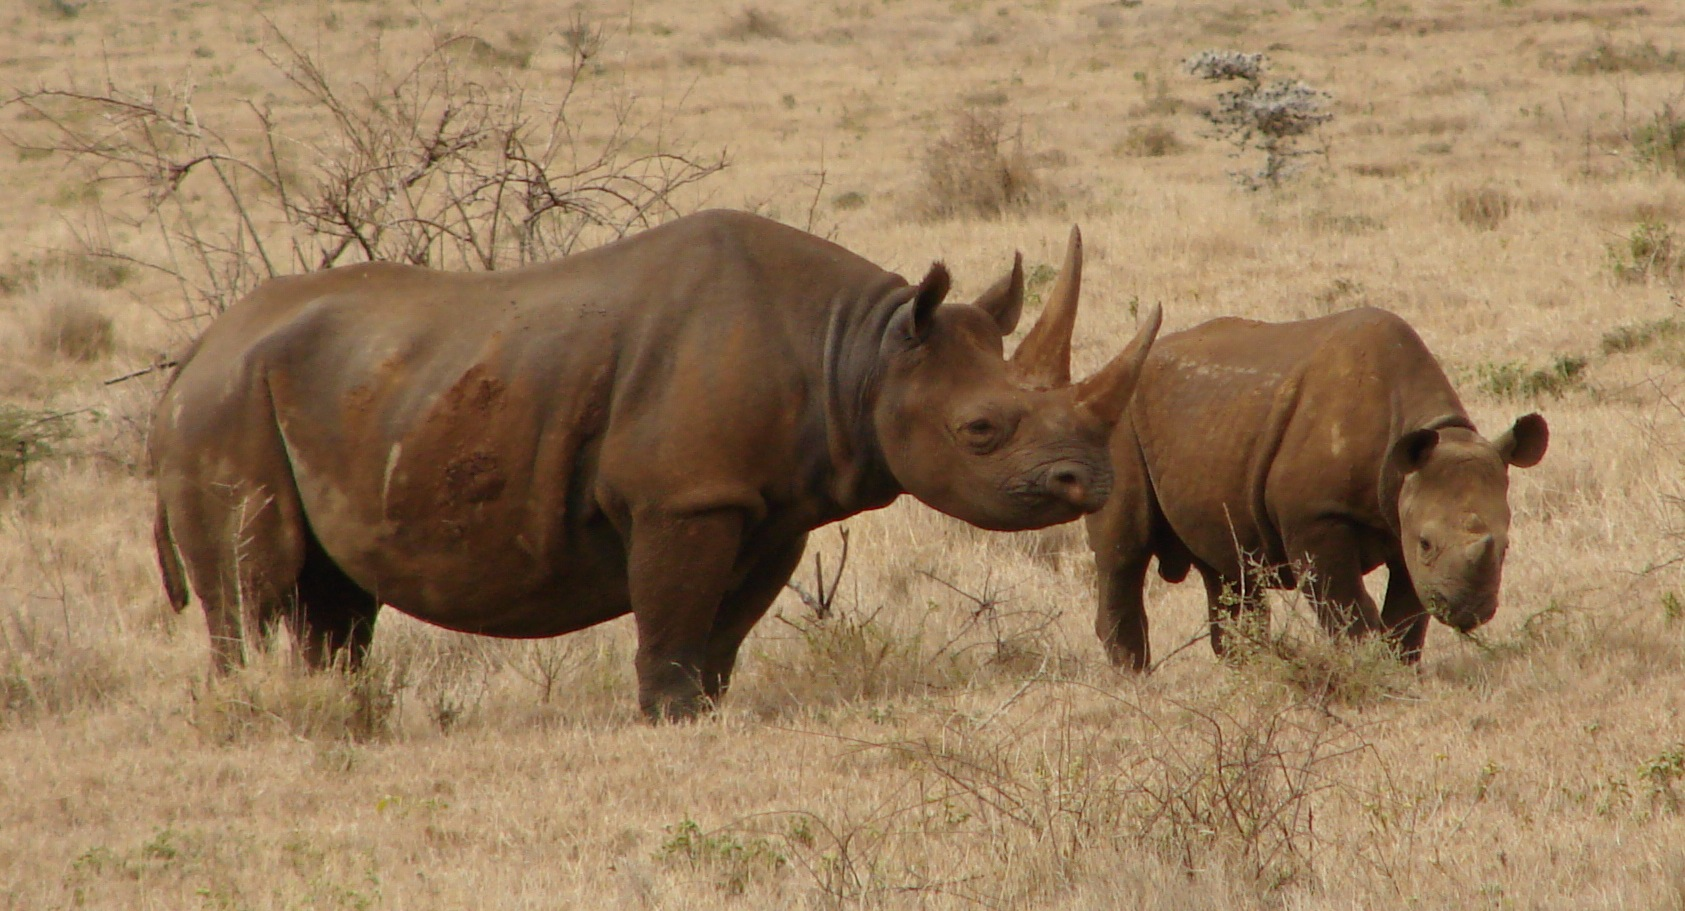 Black rhinos such as these in Kenya are endangered across their range in Africa, due to loss of natural habitat and intense poaching for their horn.